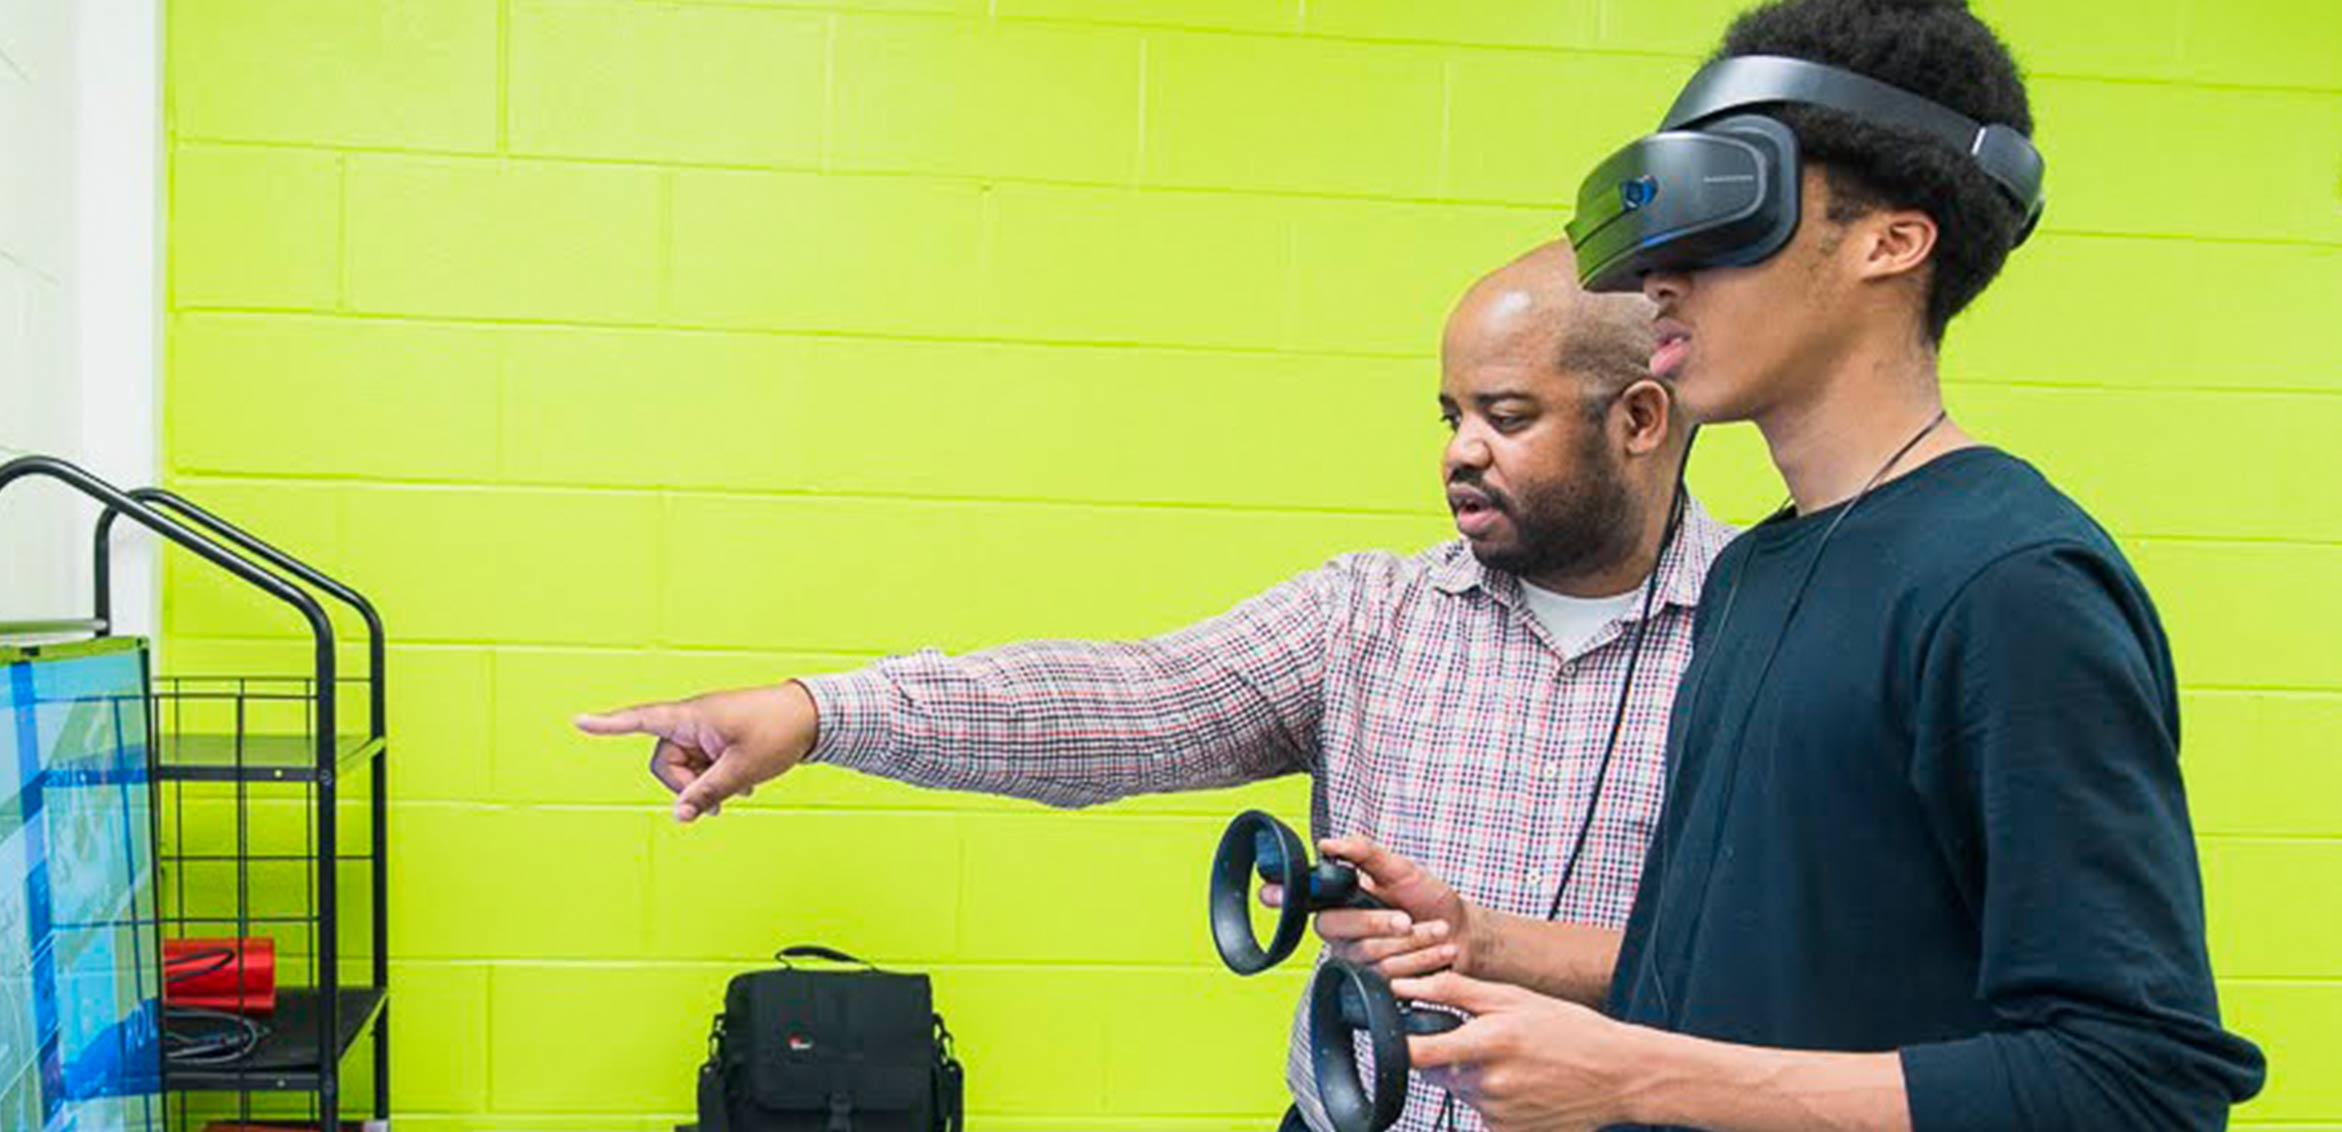 EX3 Team member with Dyett High School Student in VR headset